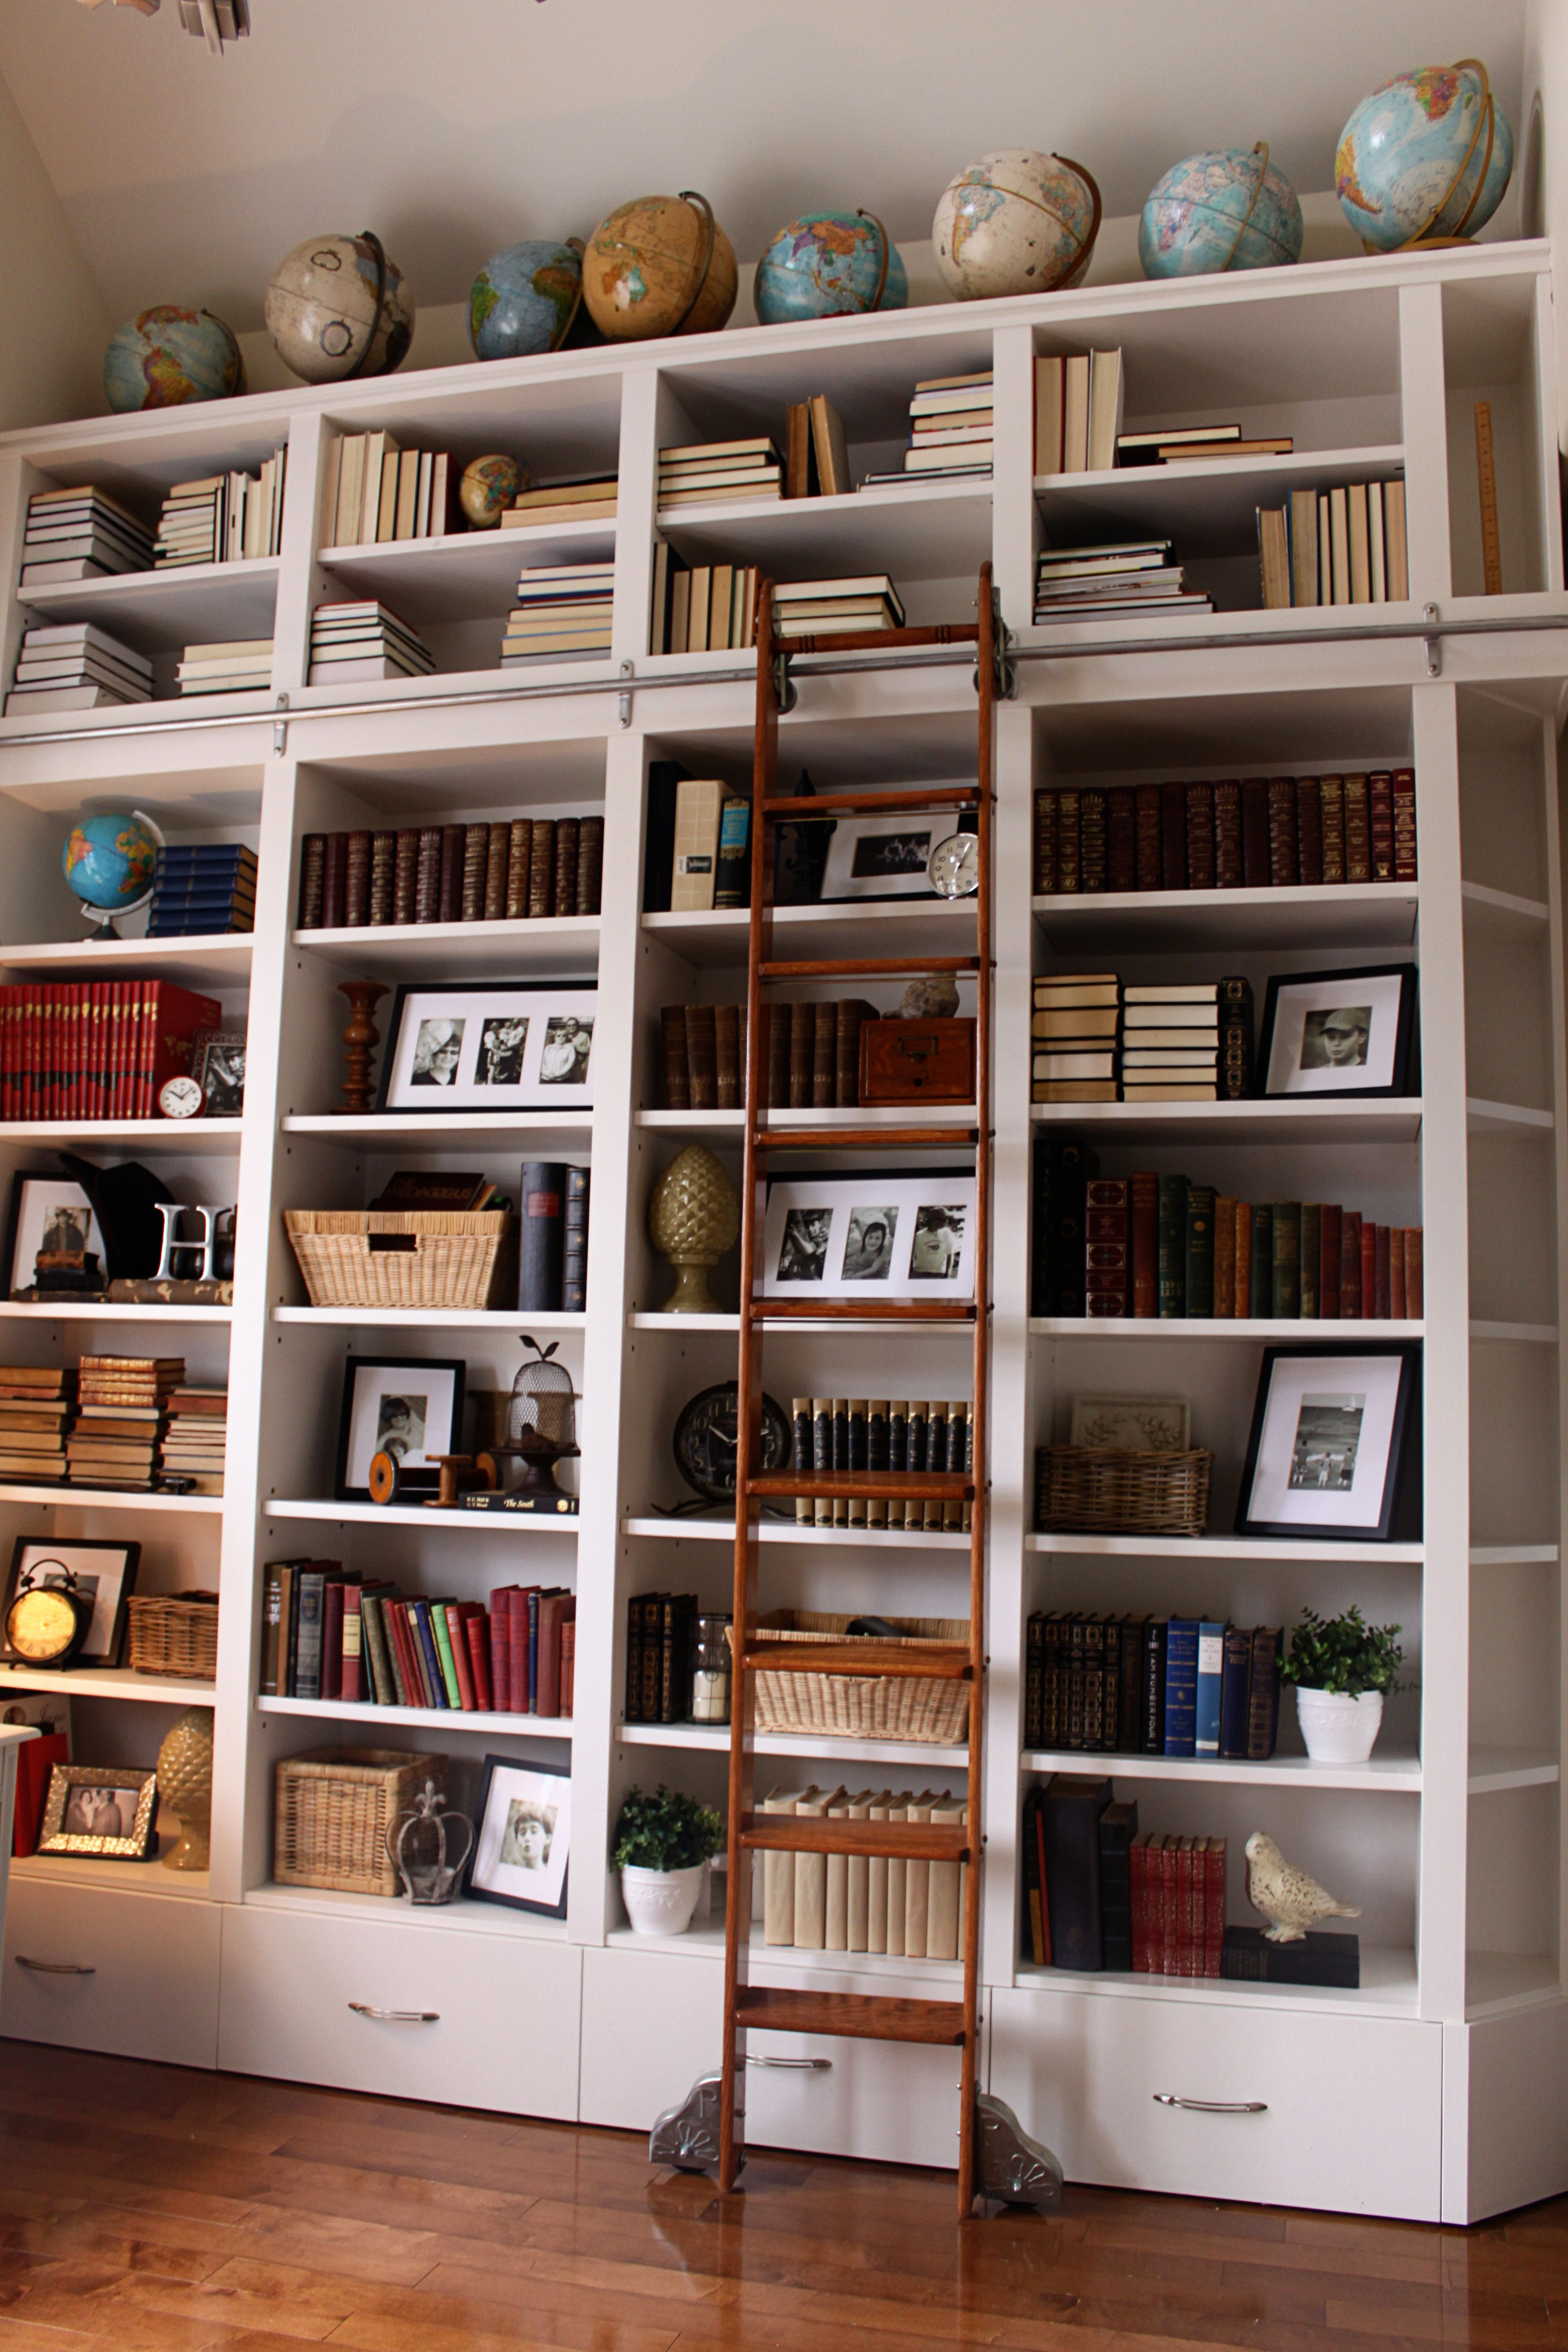 library gallery bookcase closets shelves california family bookcases berkeley libraries solutions home lighted photoshoot